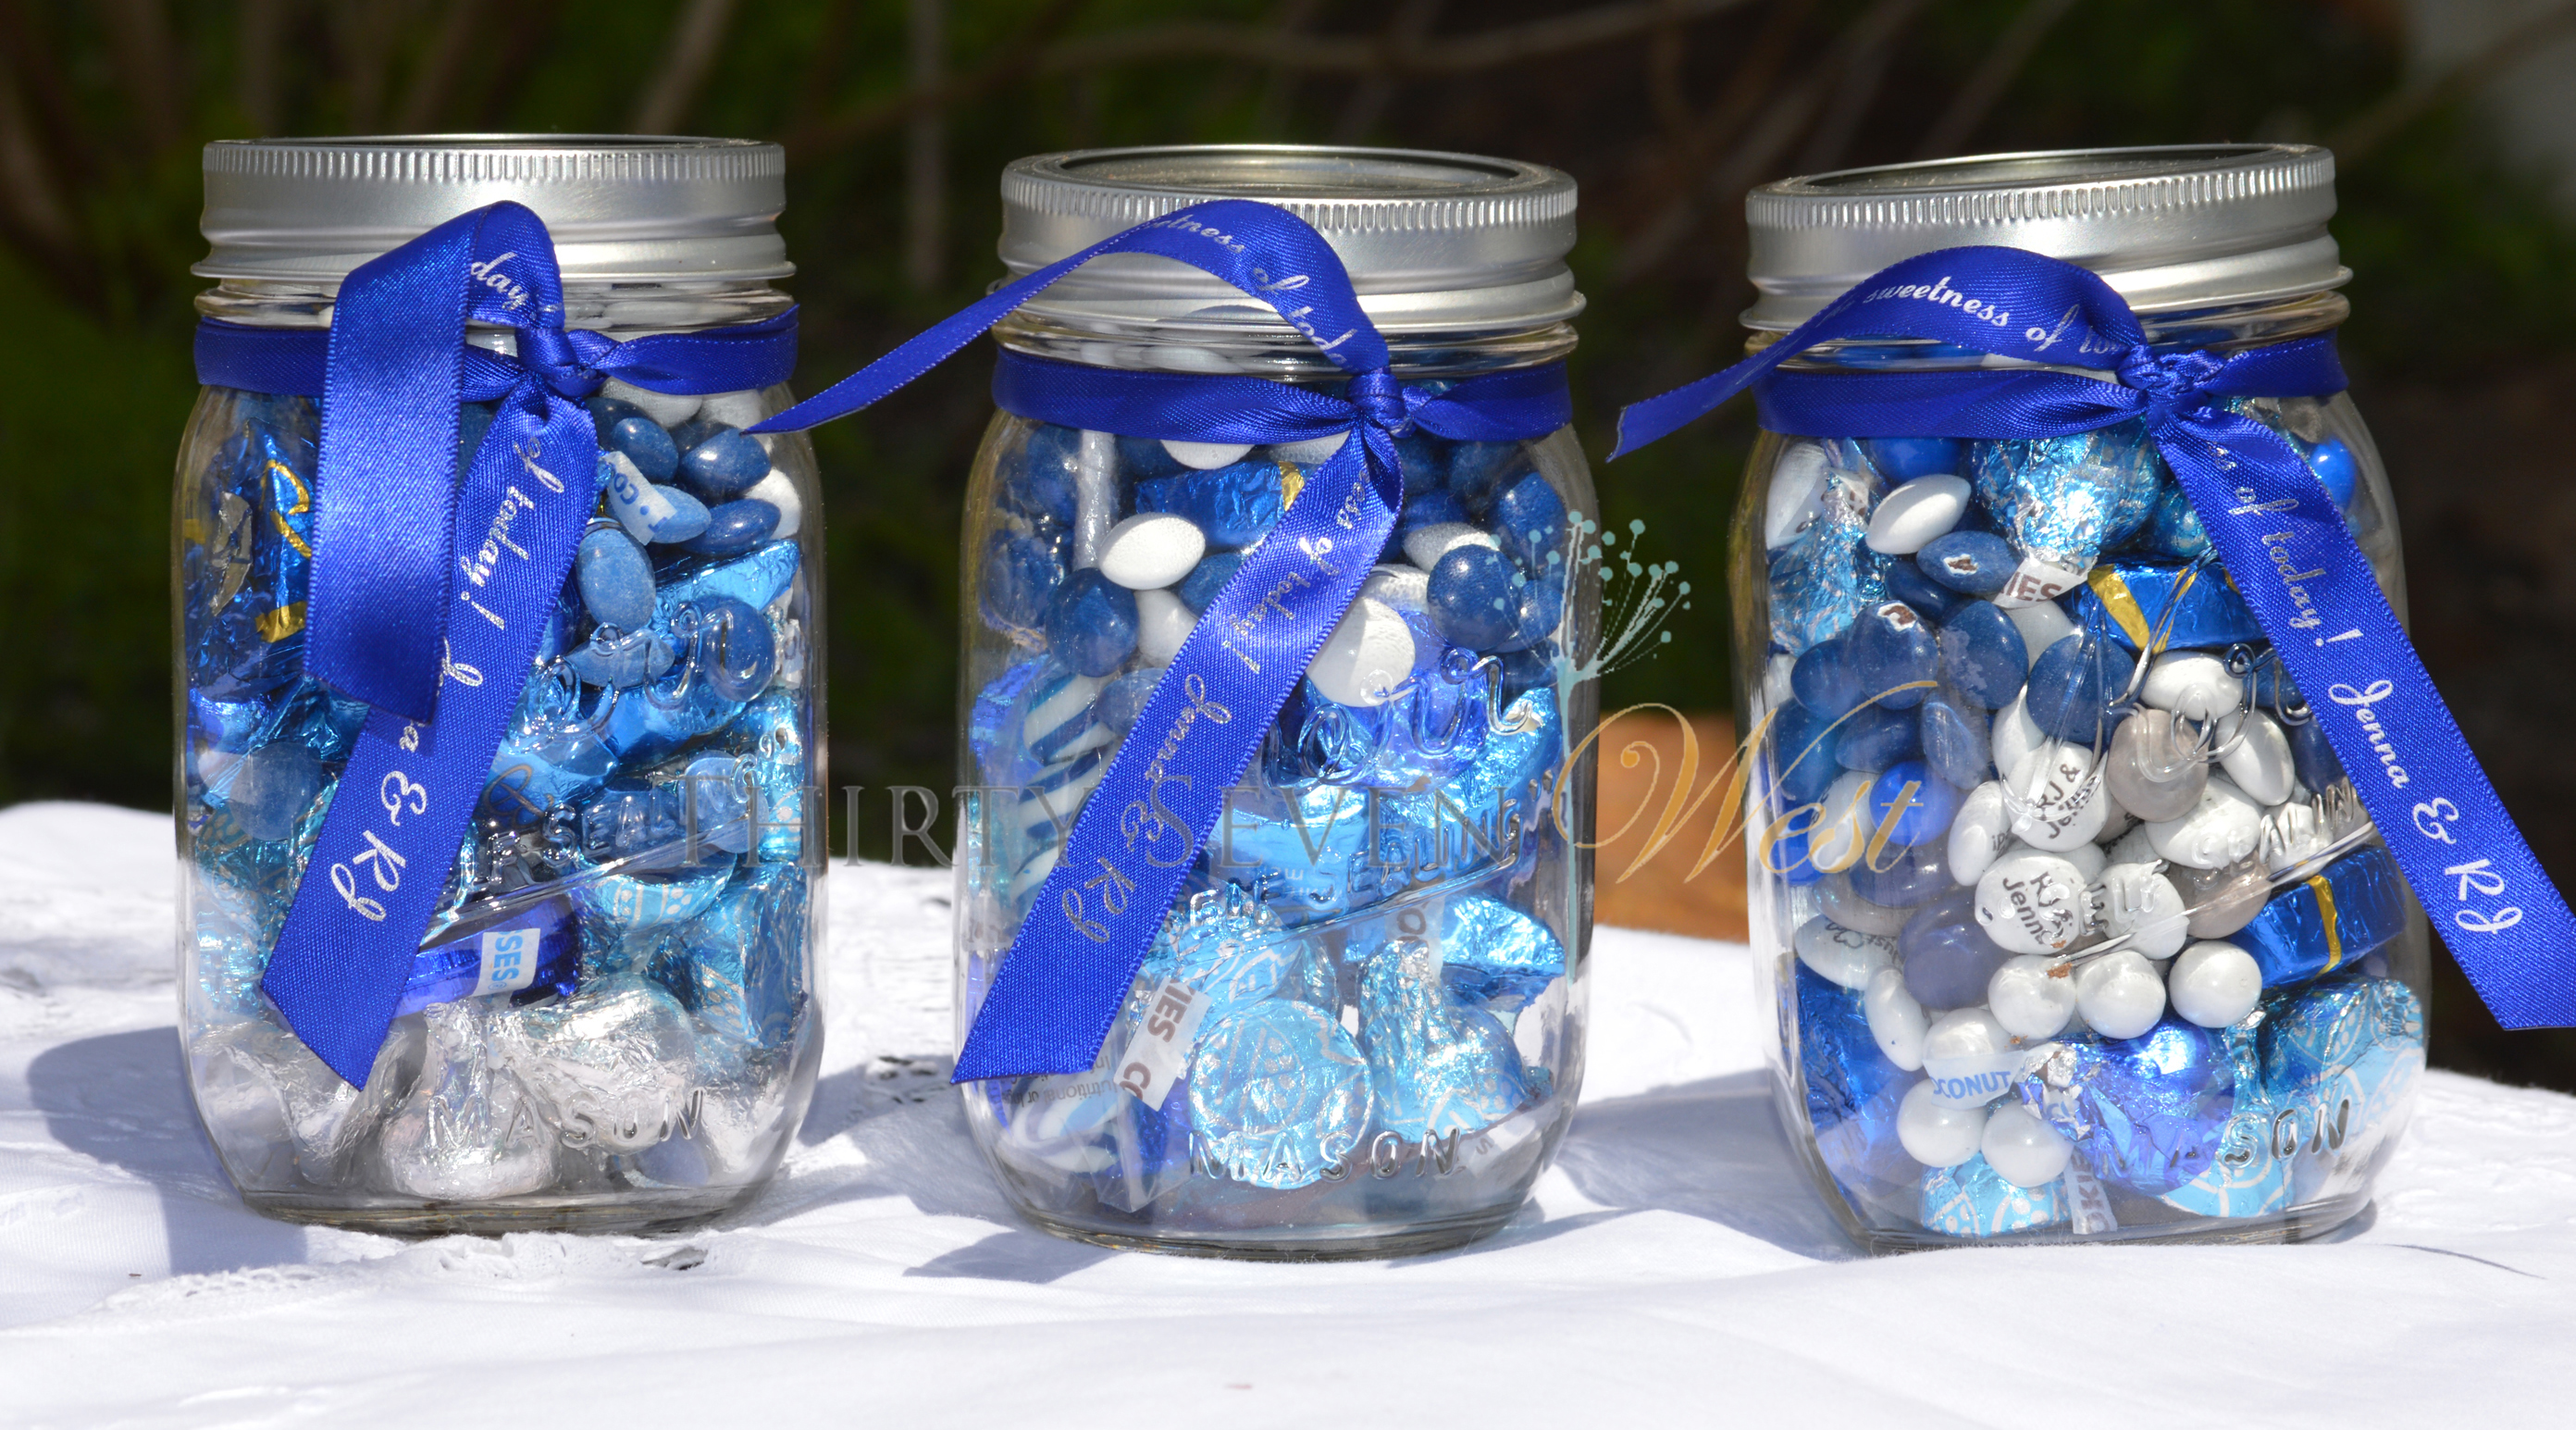 printed-ribbon-on-mason-jars-smaller-cropped-watermarked.jpg